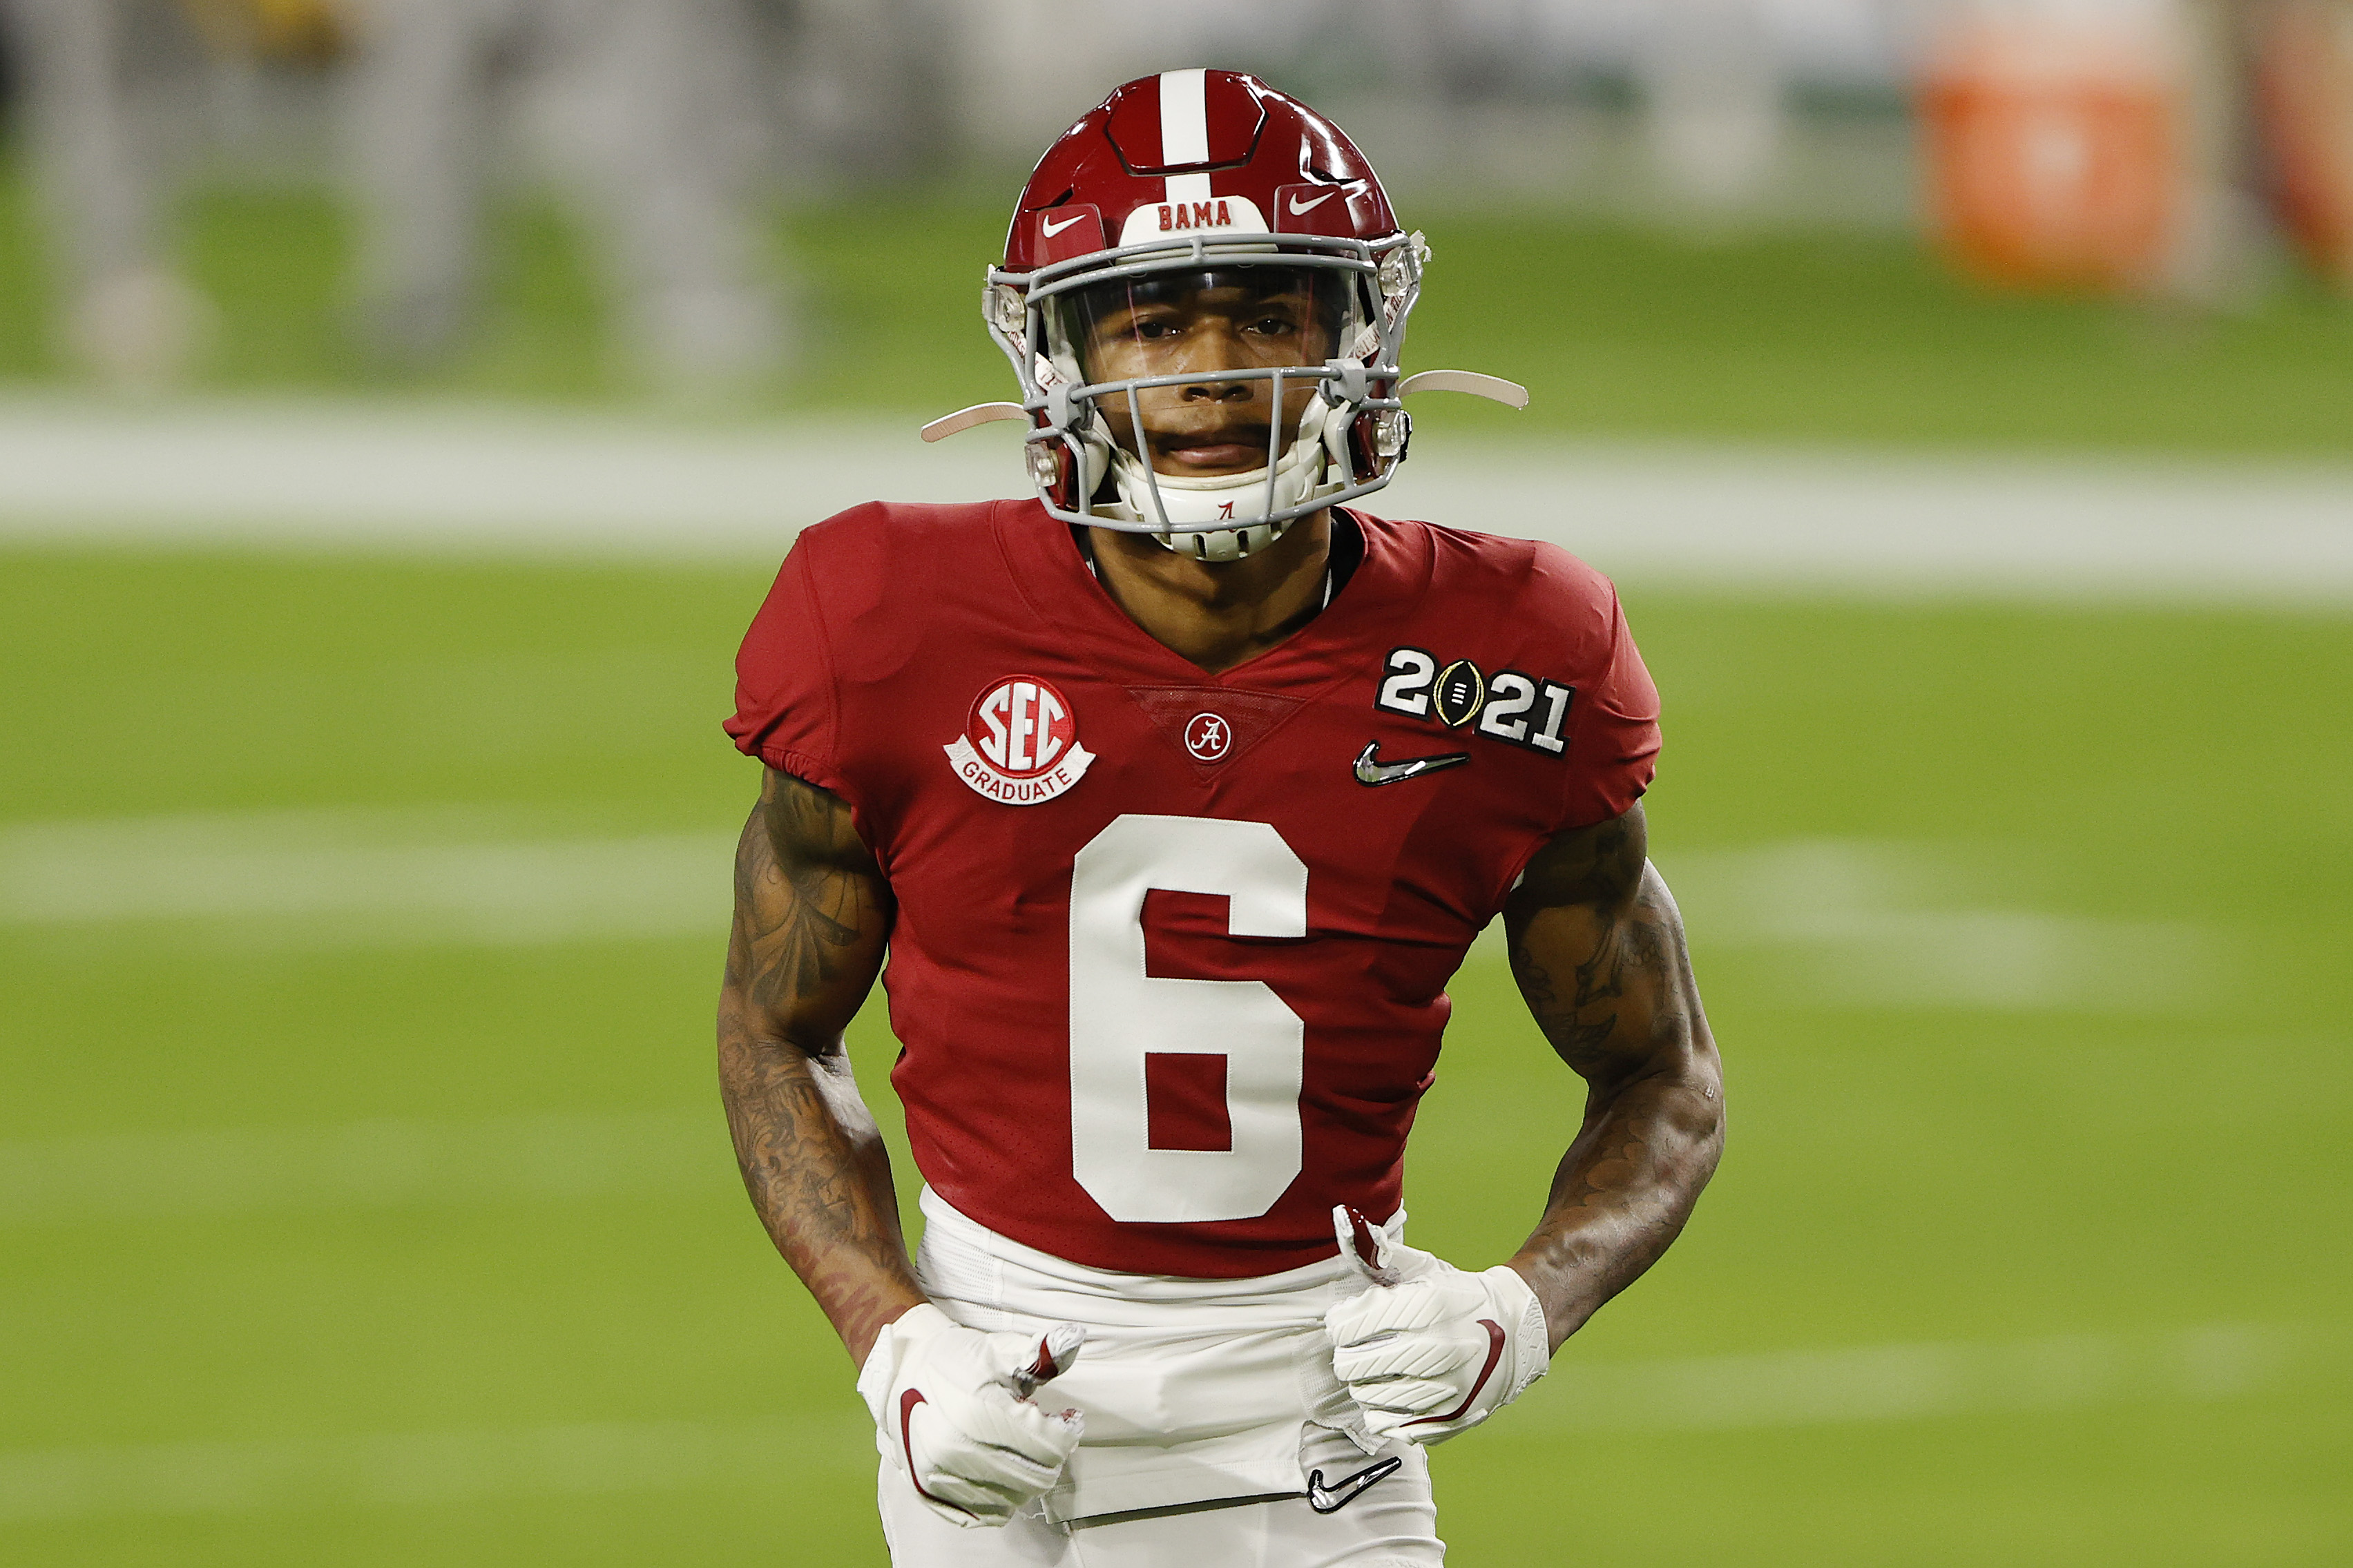 DeVonta Smith #6 of the Alabama Crimson Tide warms up prior to the College Football Playoff National Championship game against the Ohio State Buckeyes at Hard Rock Stadium on January 11, 2021 in Miami Gardens, Florida.